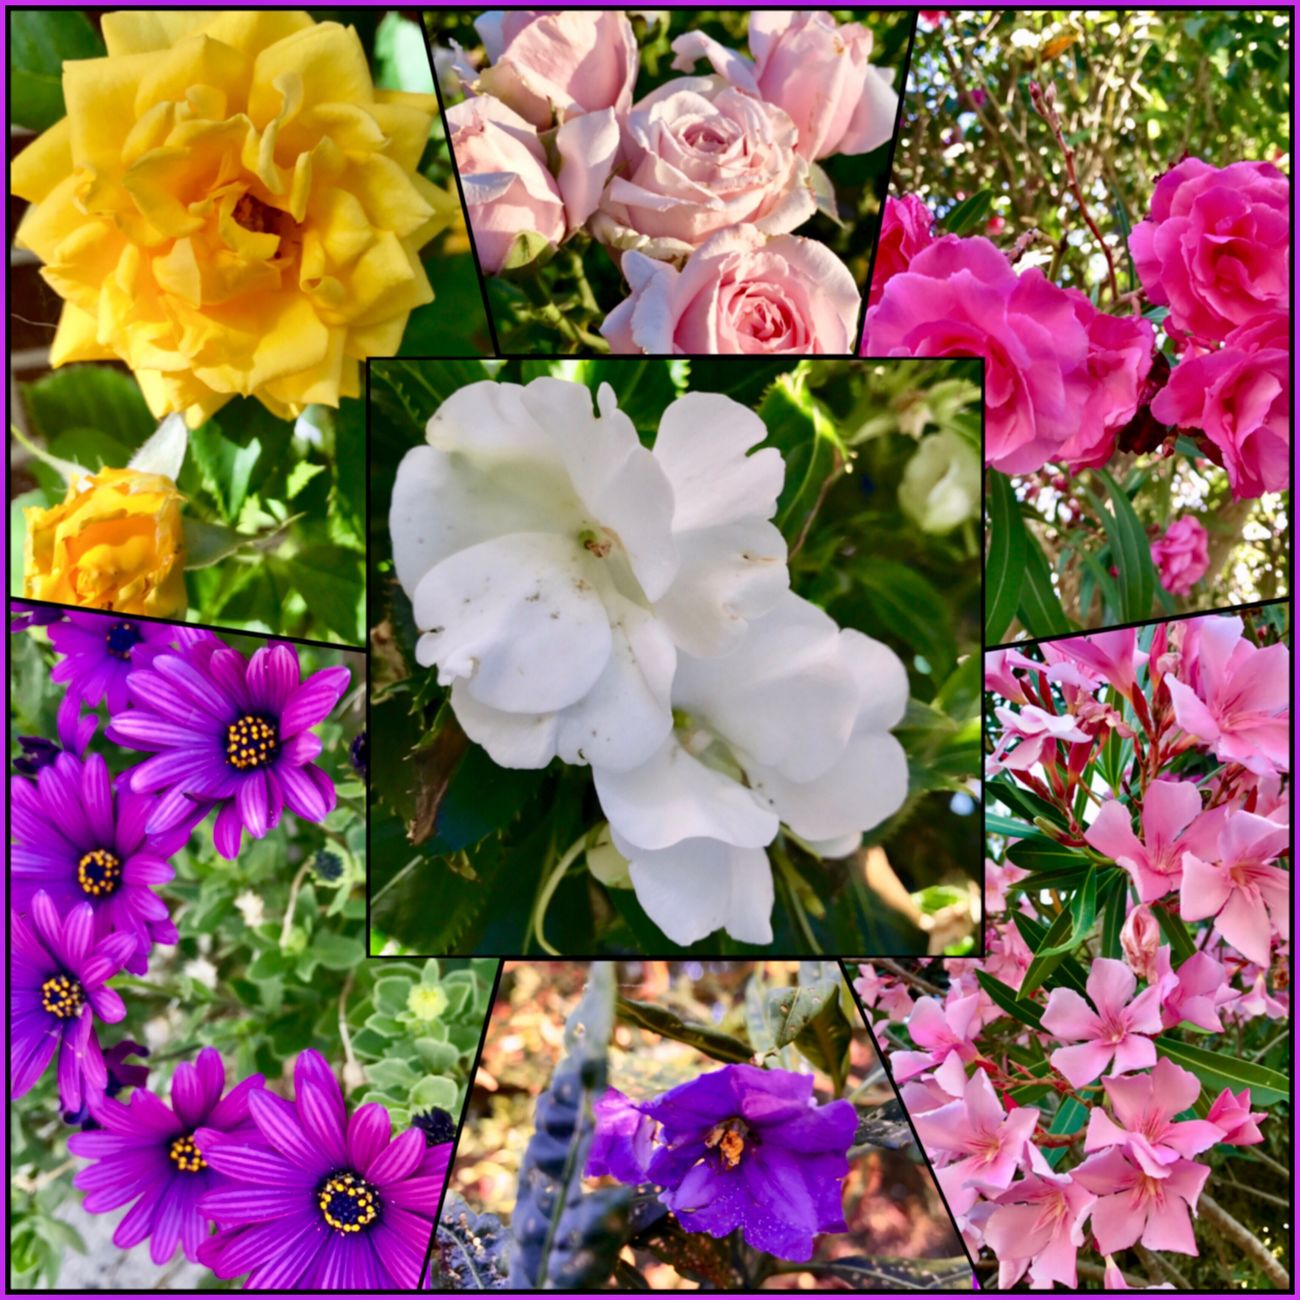 All of the flower's I've taken today, made in a collage💜💚💙💛❤️ Flower Flowers Beautifulcolourfulflowers🍃🌸🌺🌼🍃 Plants And Flowers Beautiful😍😍😍 Blooming Flowerseries Summerflowers WhileIwaswalking Flowervibes🌸🌺🌼 Flowercollage🌸🌺🌼 FlowerLove🌸💙🌺💚🌼❤️ MyPhotographyoftheday💚🌸📱📸🌼💜